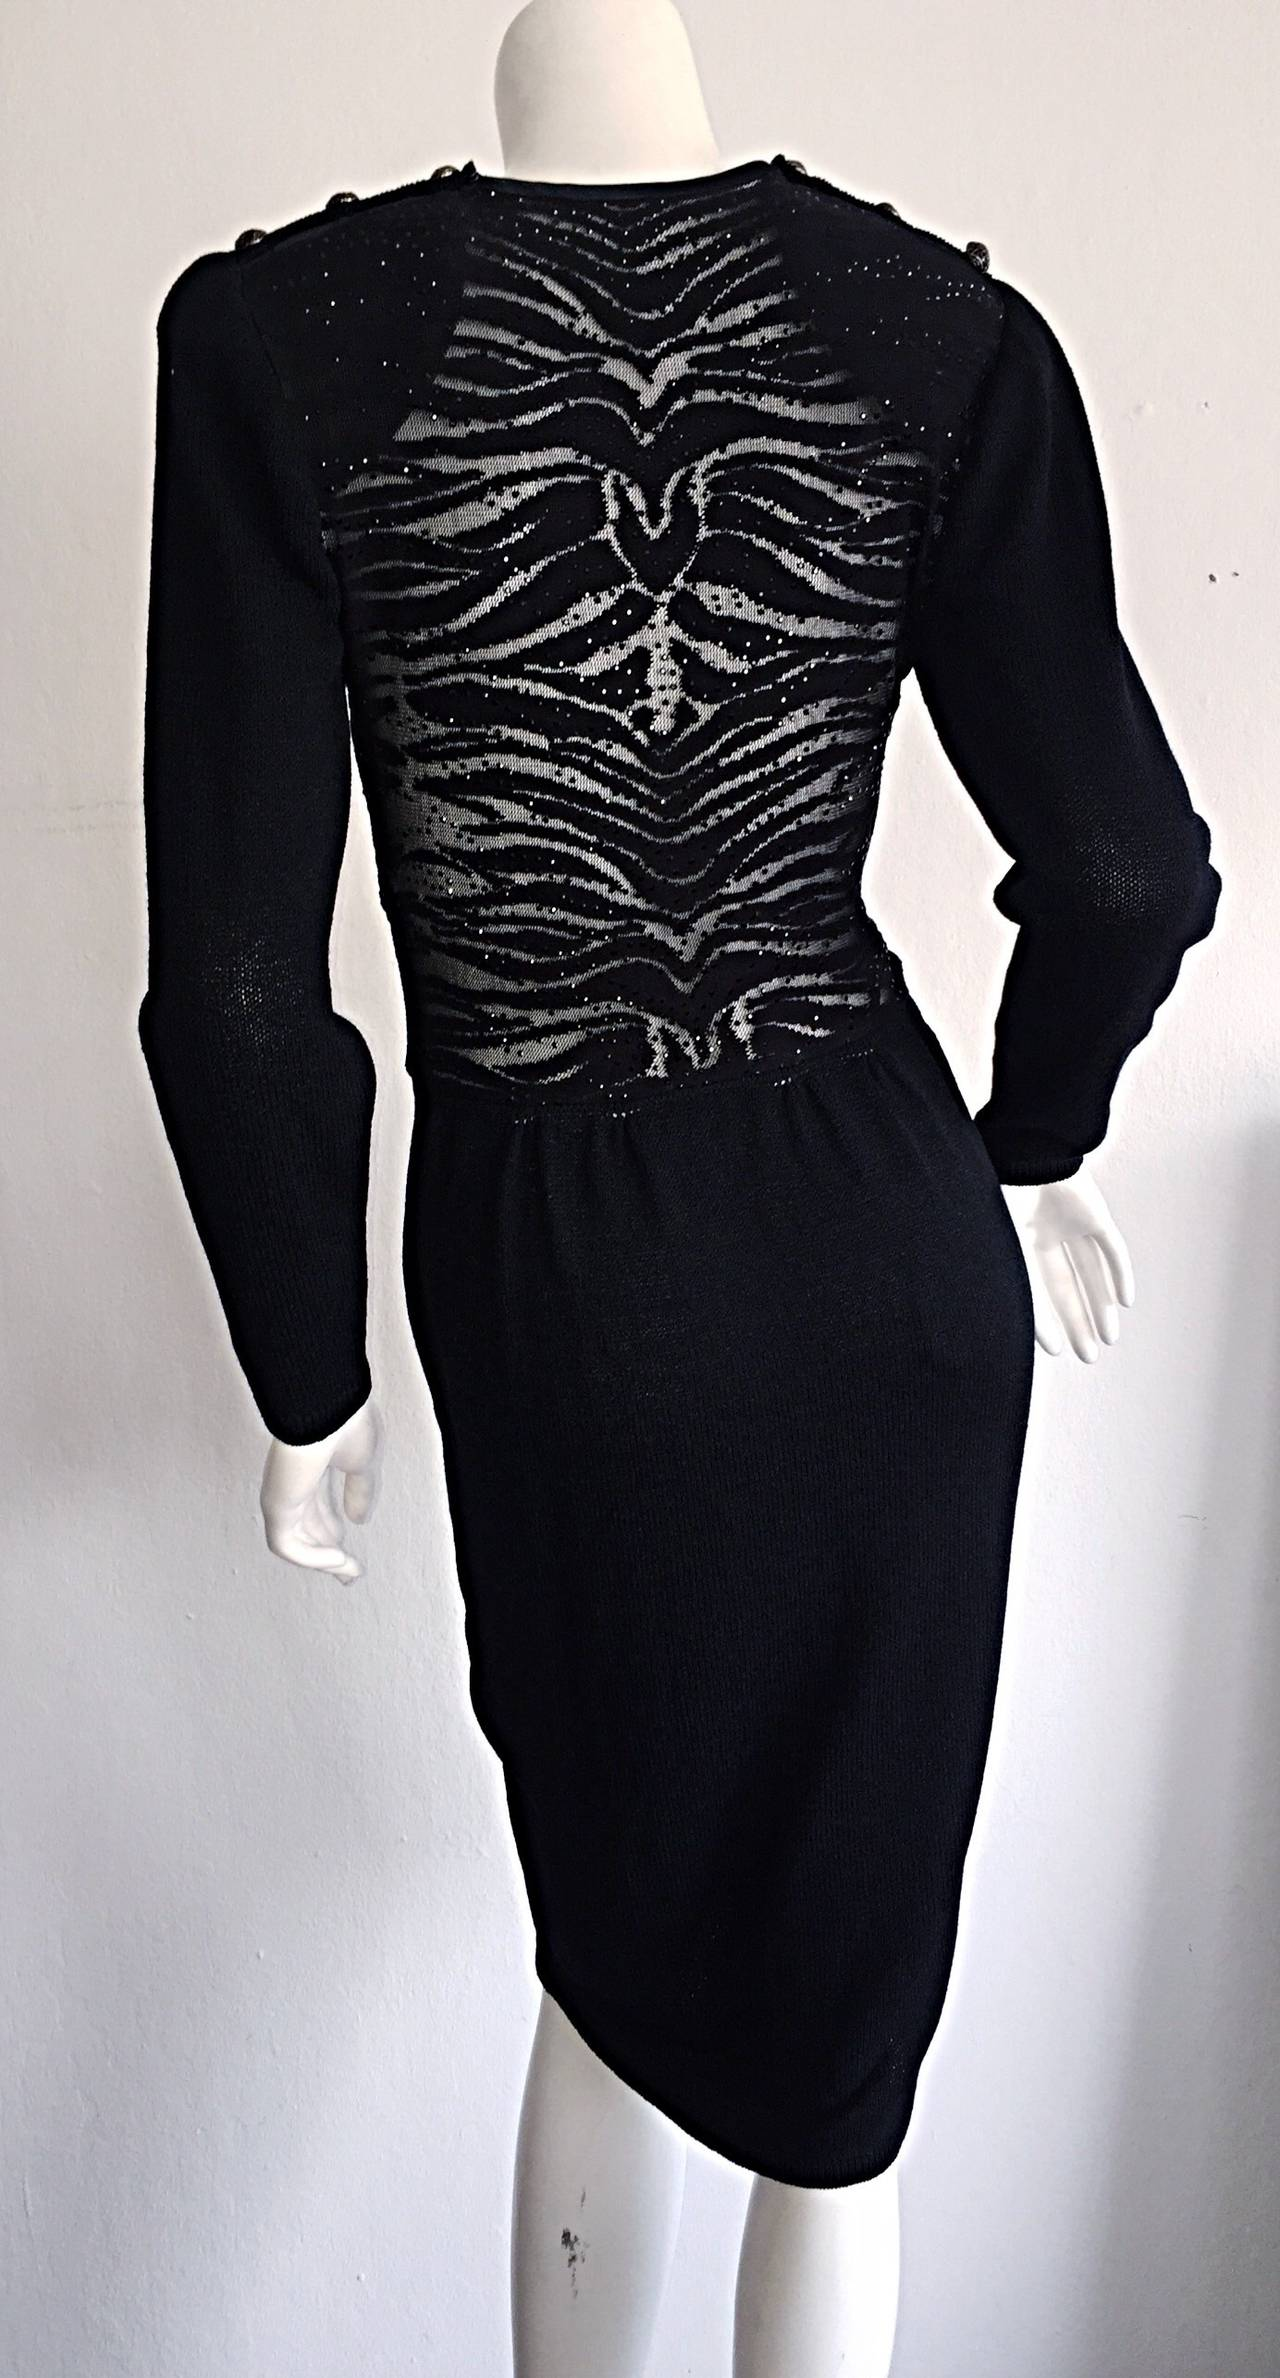 Vintage St. John Neiman Marcus Black Dress w/ Sheer Sparkle Zebra Back 5